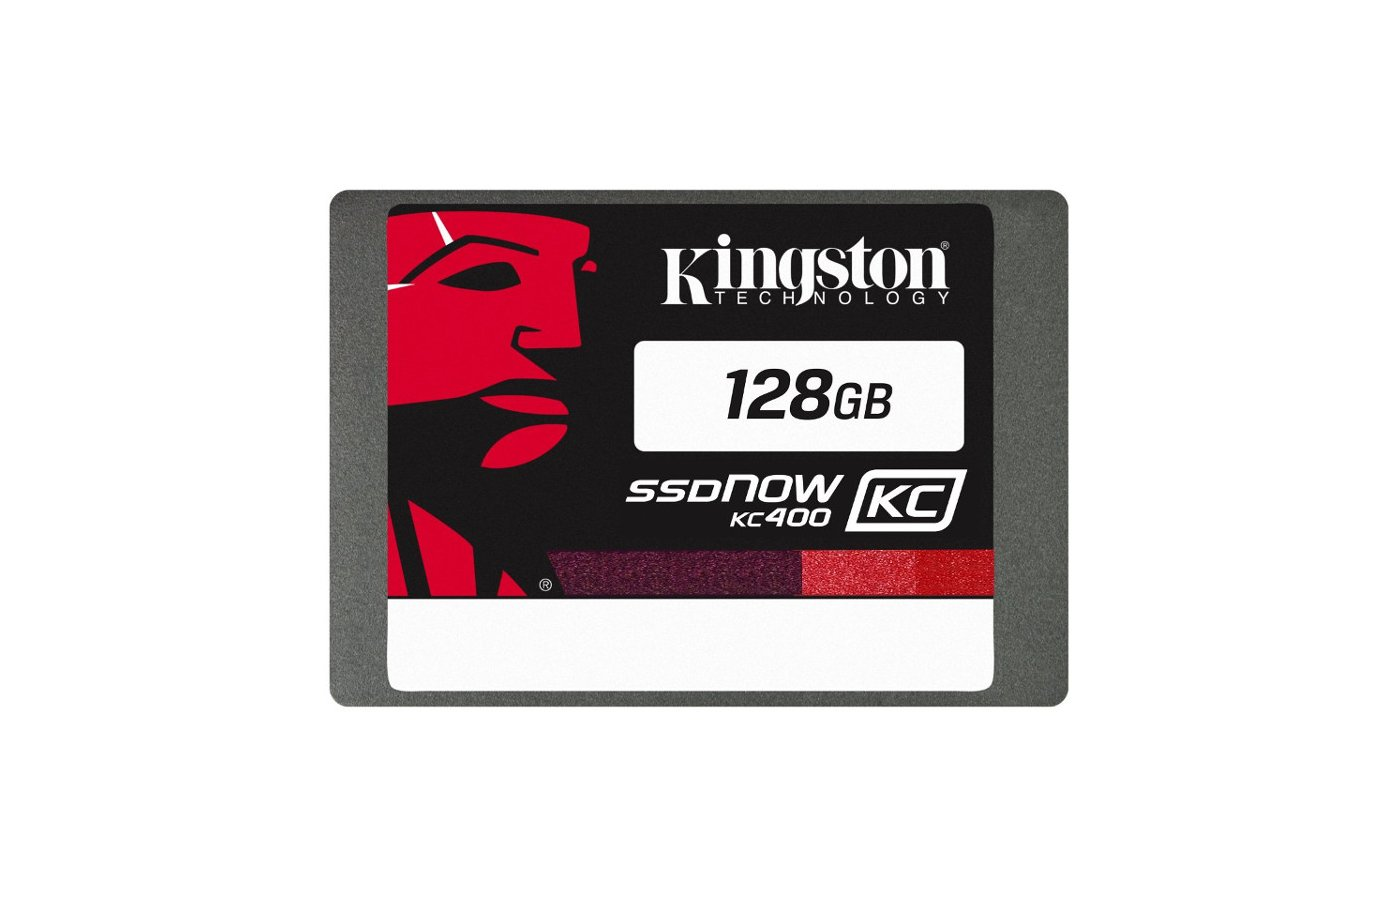 SSD жесткий диск Kingston 128GB SSDNow SKC400S37/128G SSD SATA 3 2.5 (7mm height)